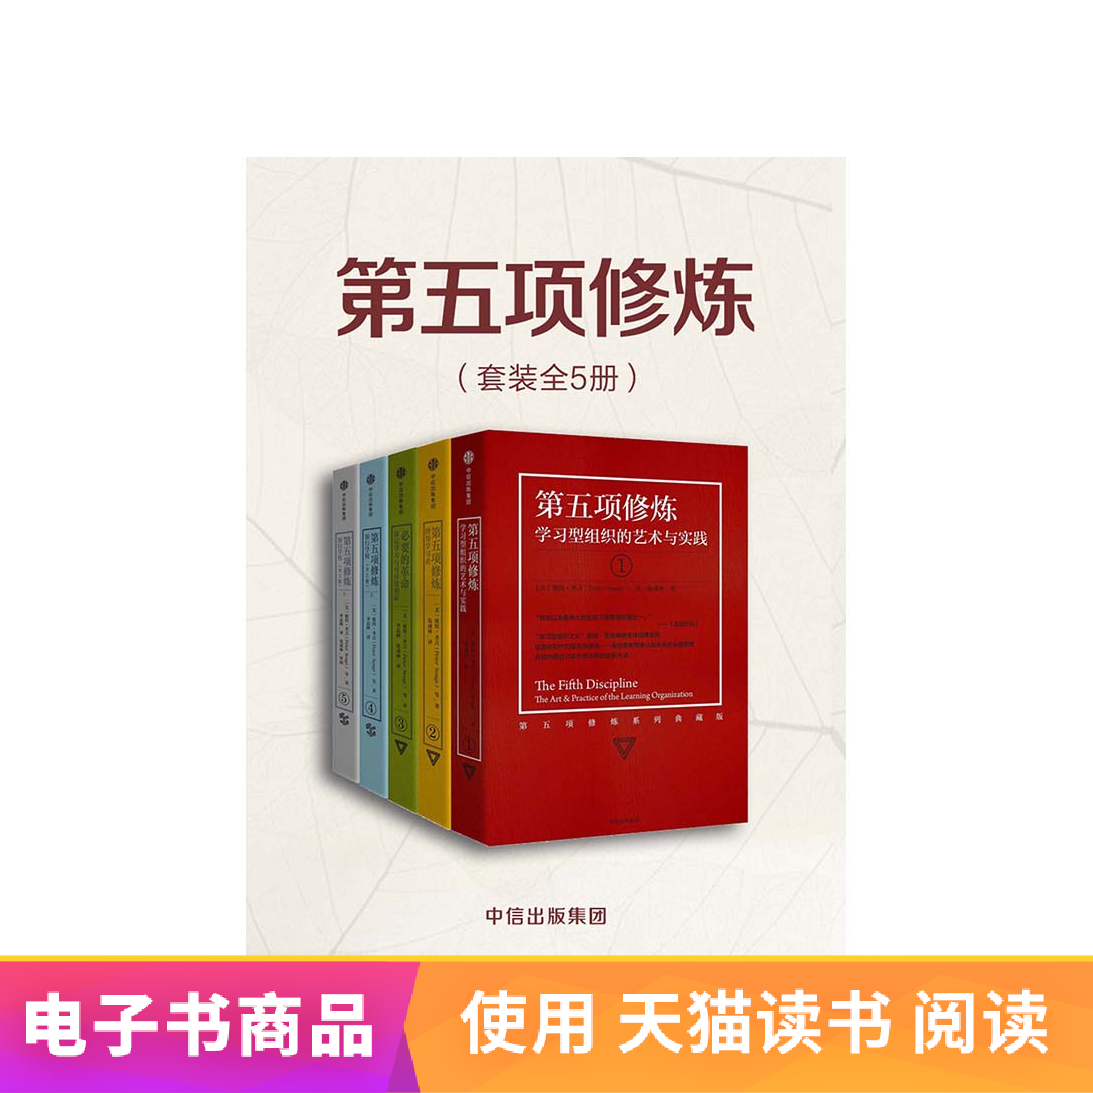 The fifth training (set of 5 Volumes) tmall e-book